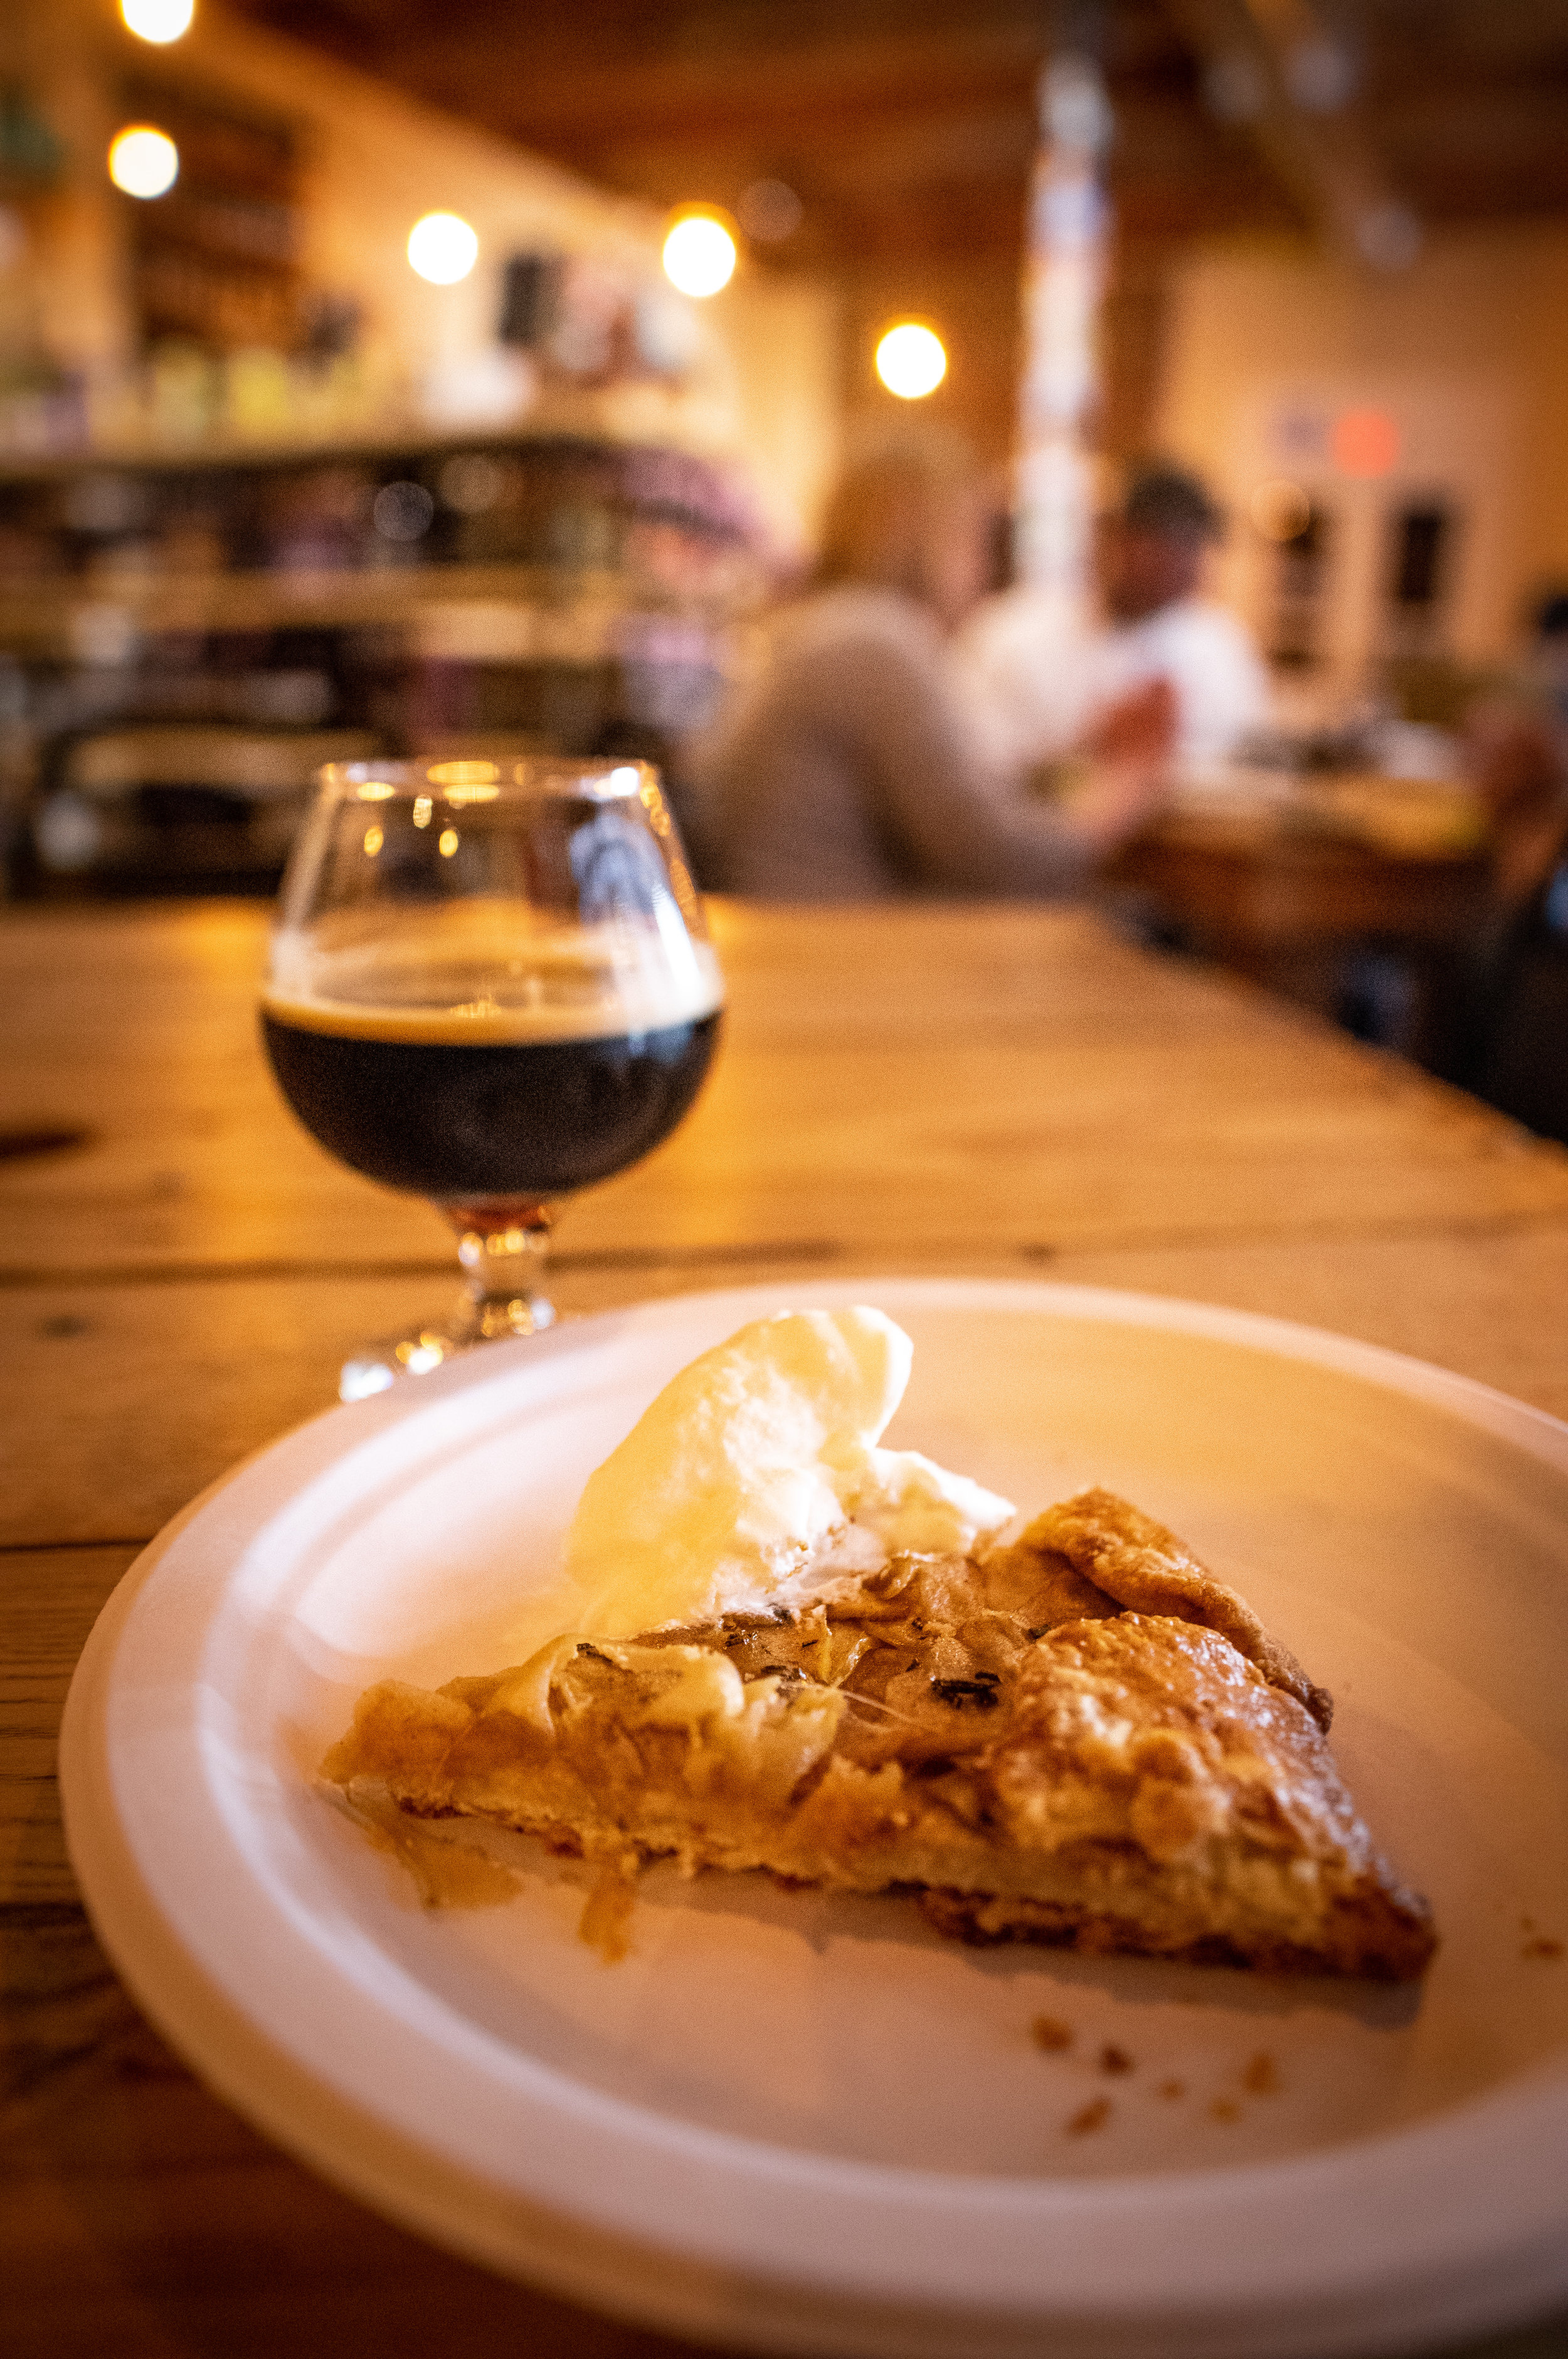 The galette with Lakewood's French Quarter Temptress, a milk stout with coffee and chicory.